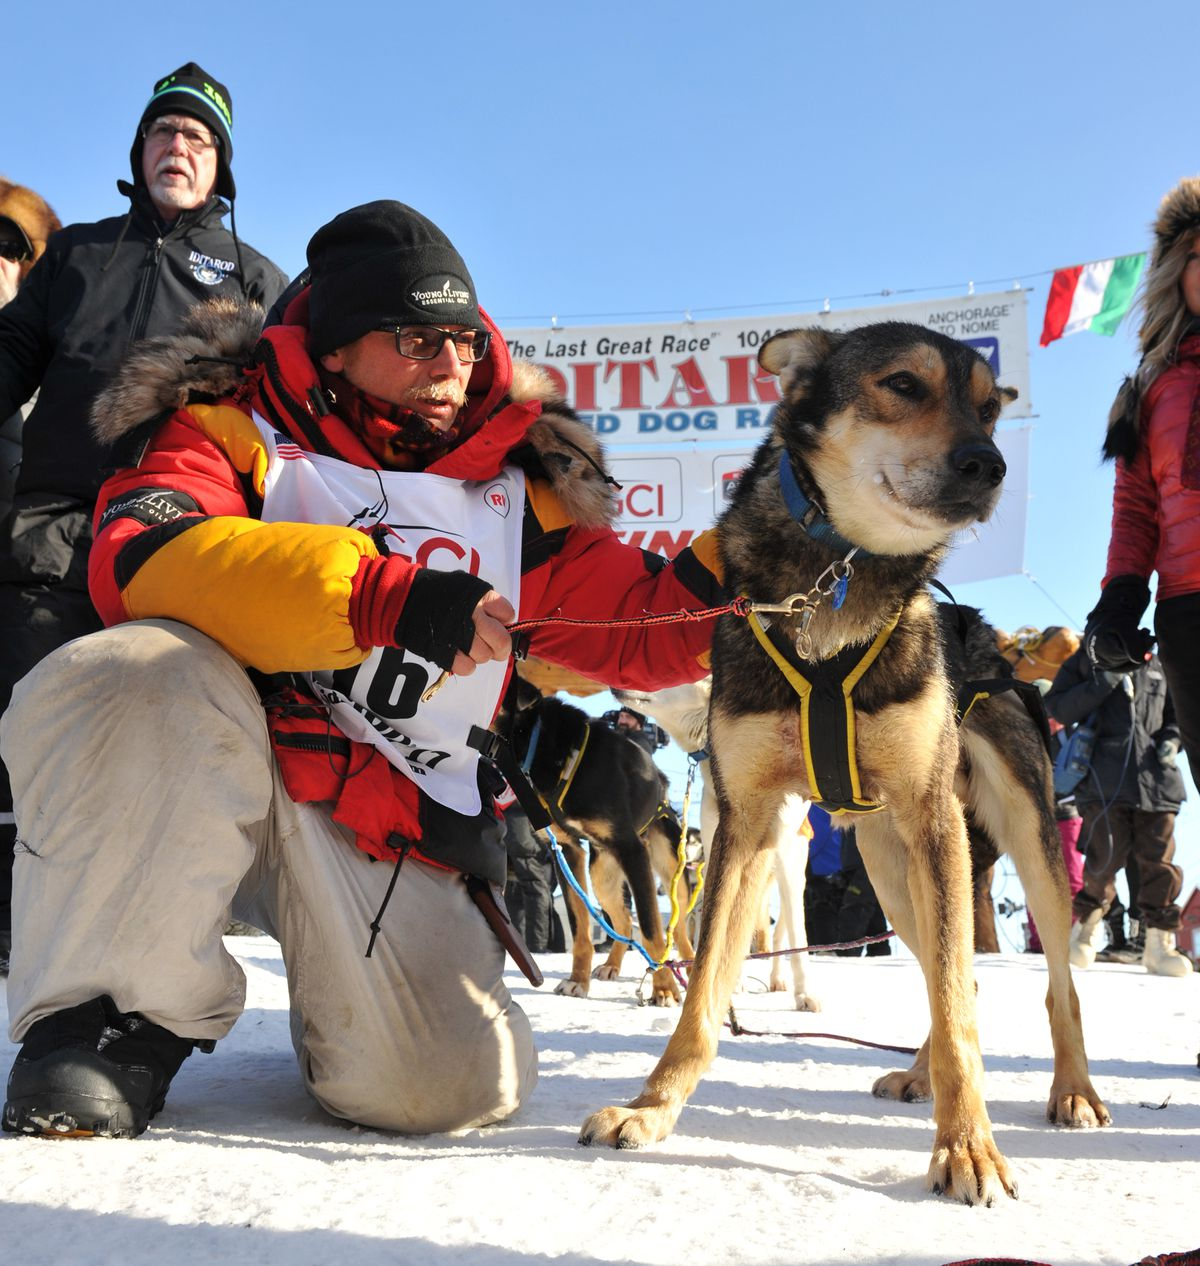 Mitch Seavey poses with his lead dog Pilot after winning last year's Iditarod Trail Sled Dog Race. (Bob Hallinen / ADN)